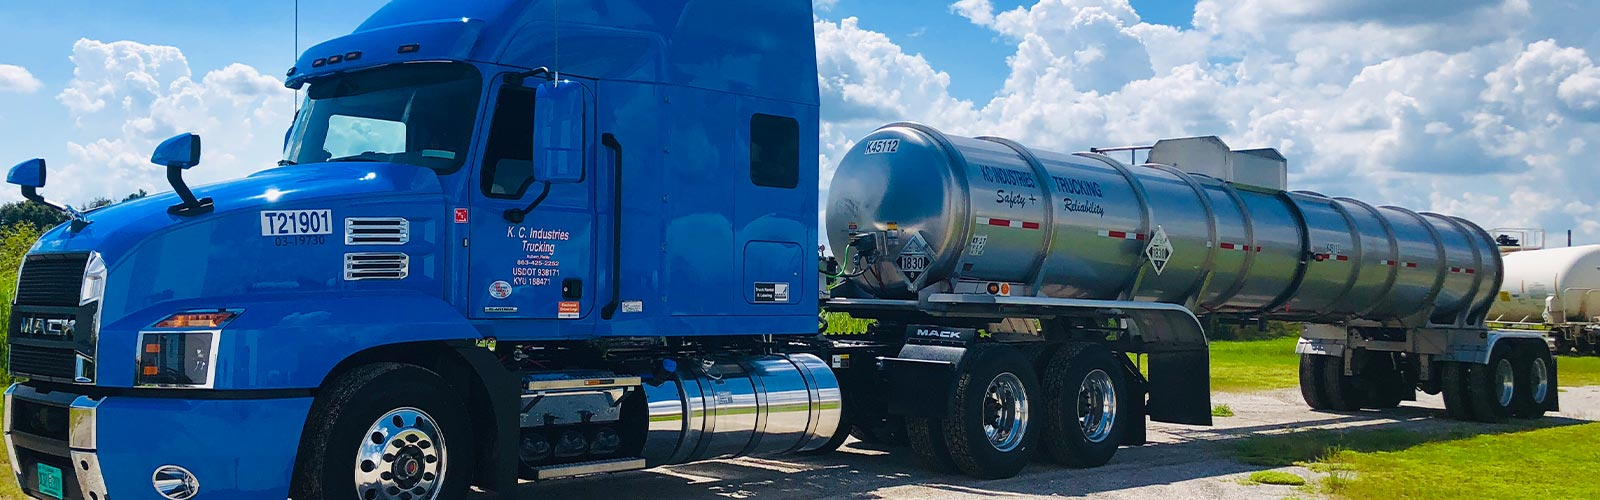 KCI Trucking Bulk Liquid and Hazardous Chemical Transportation Throughout the Southeast SS 1